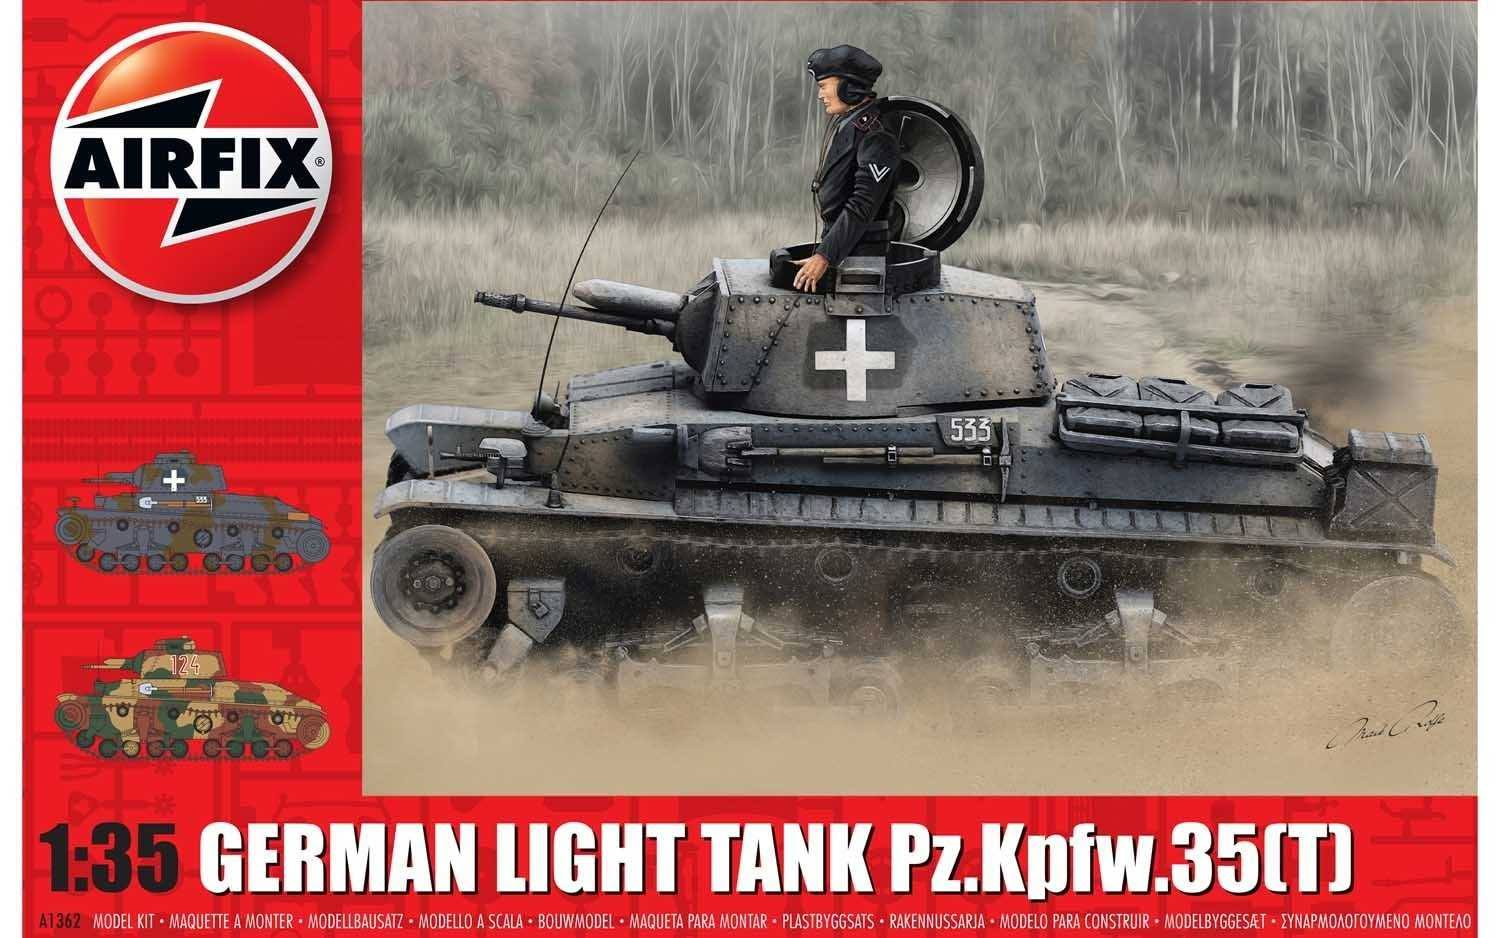 Airfix 5055286662263 German Light Tank Model Kit